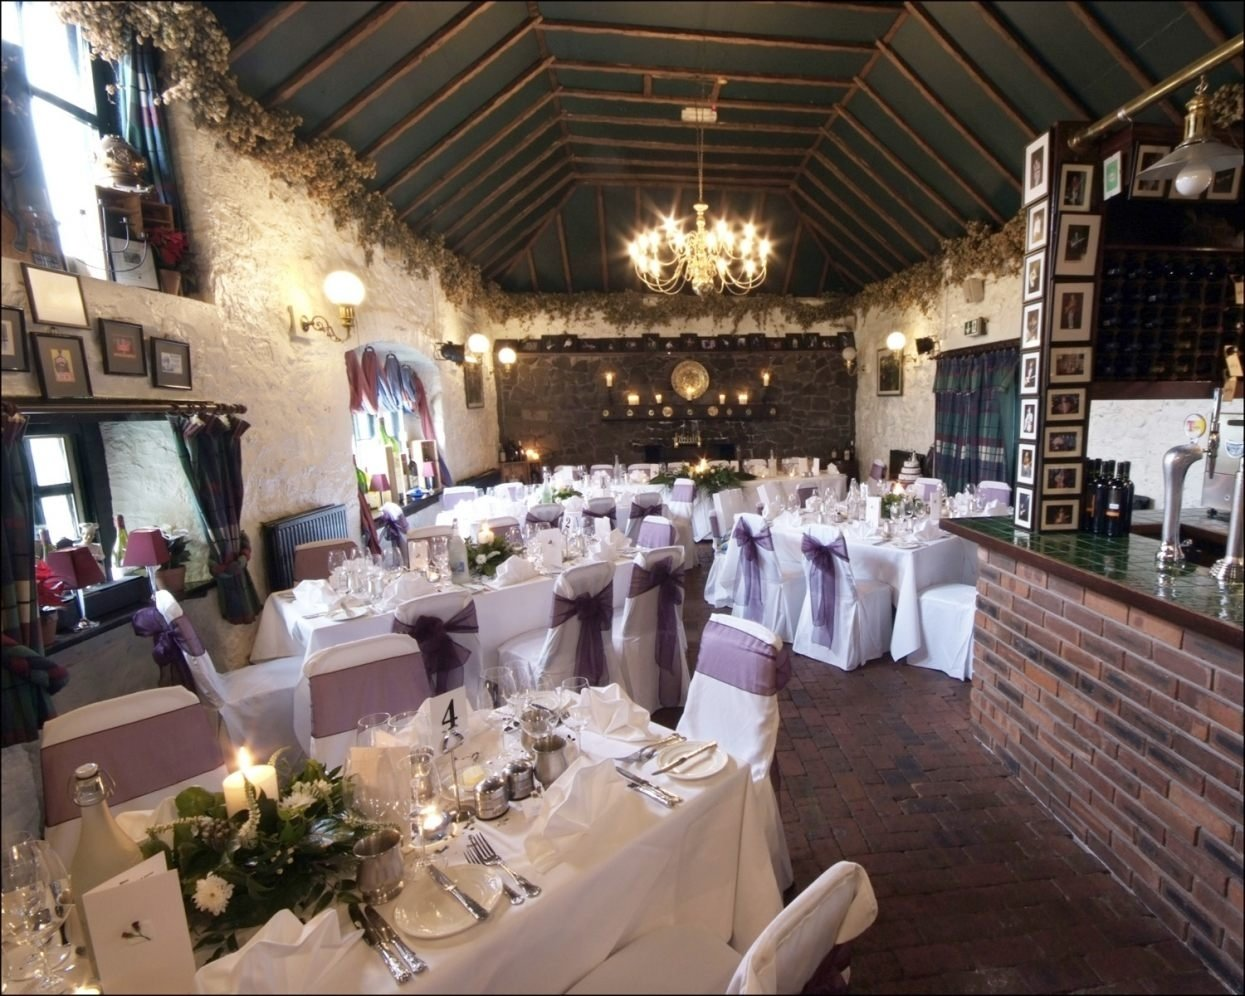 cheap intimate wedding venues #2 image of: elegant small wedding